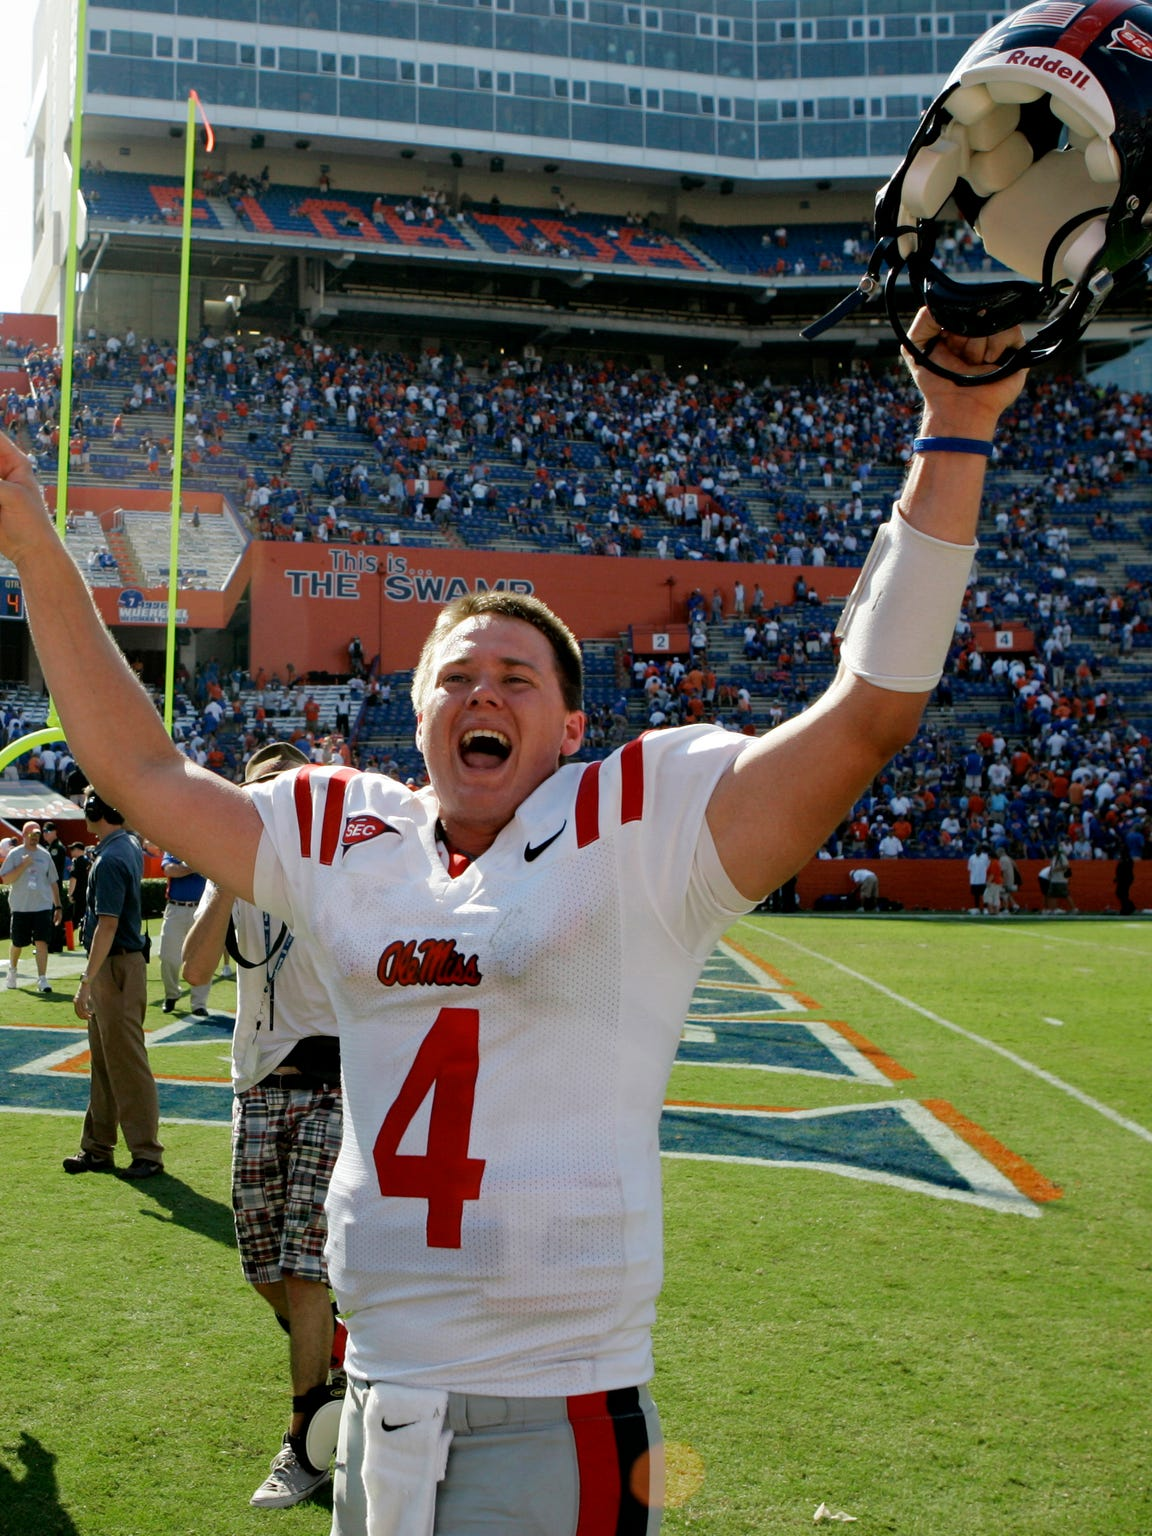 Mississippi quarterback Jevan Snead celebrates after the defeated No. 4 Florida 31-30 in an NCAA college football game in Gainesville, Florida, on Sept. 27, 2008.